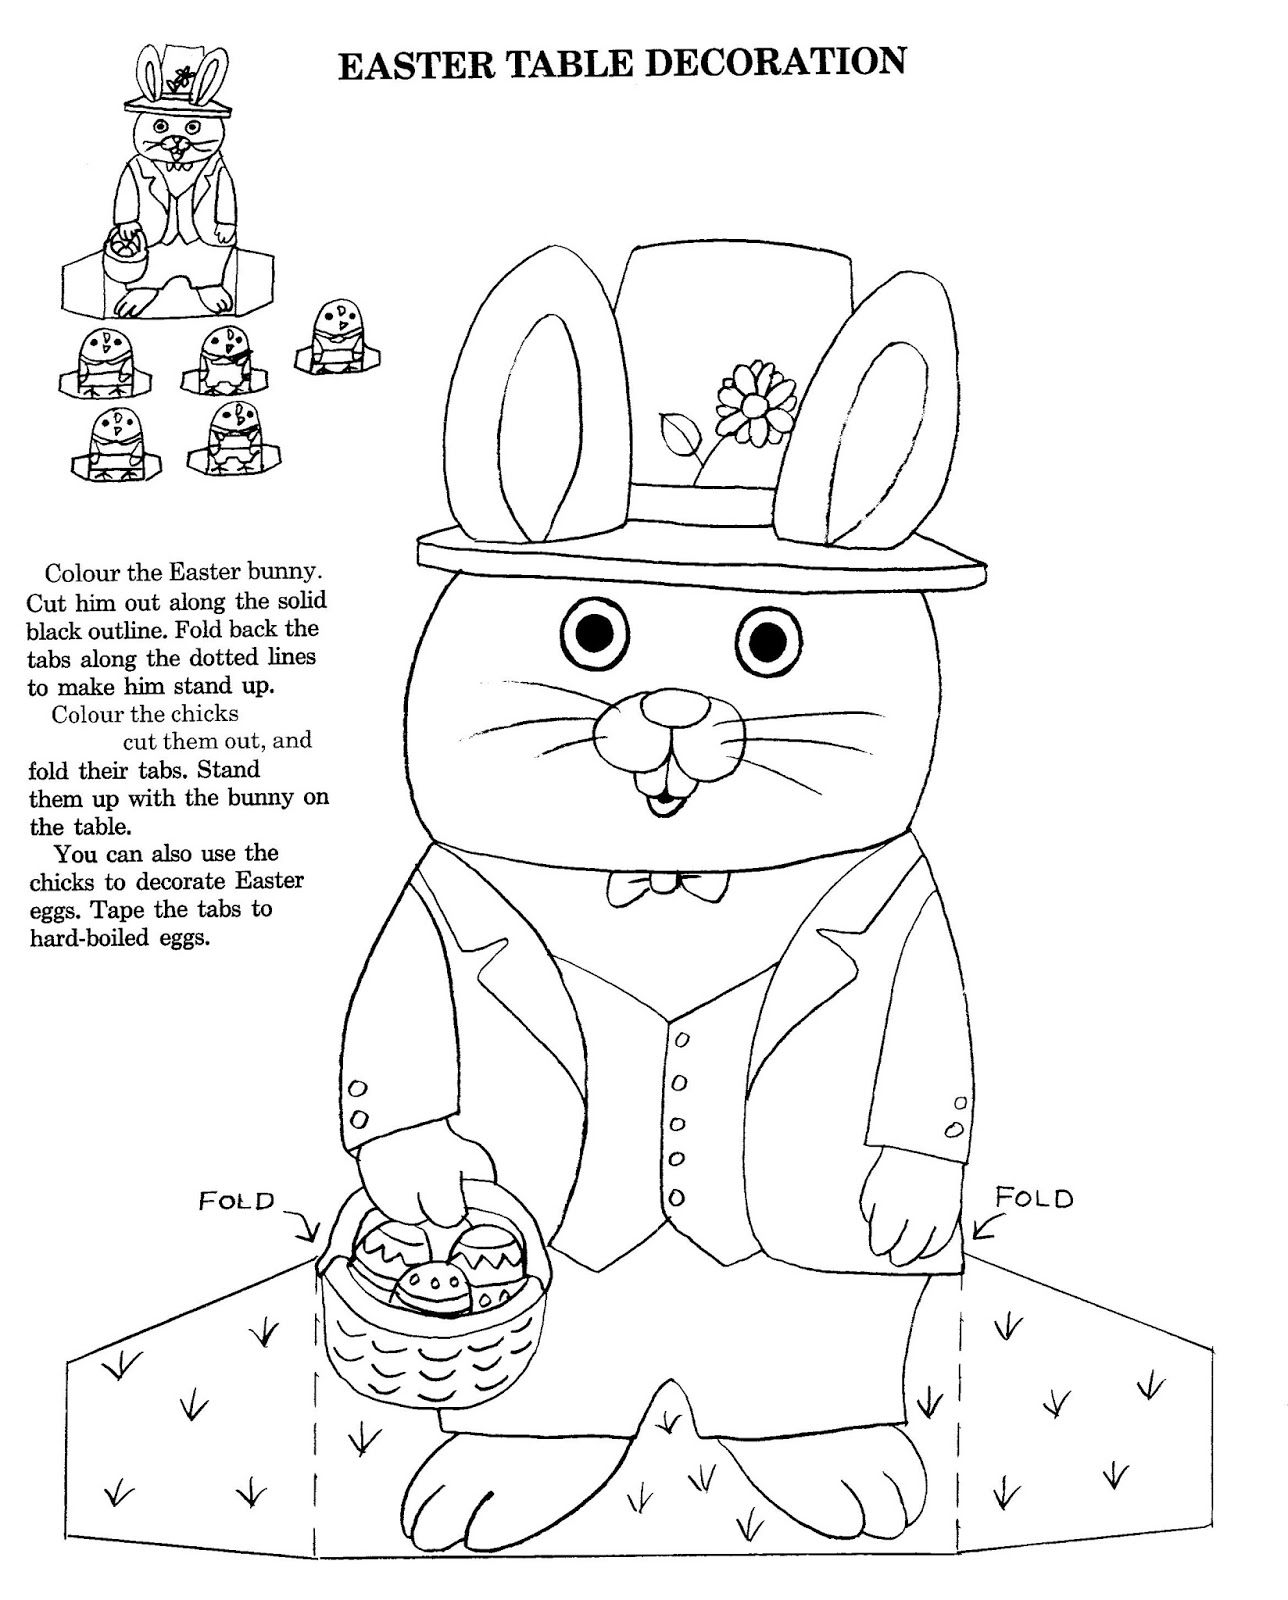 richard scarry halloween coloring pages - photo#7